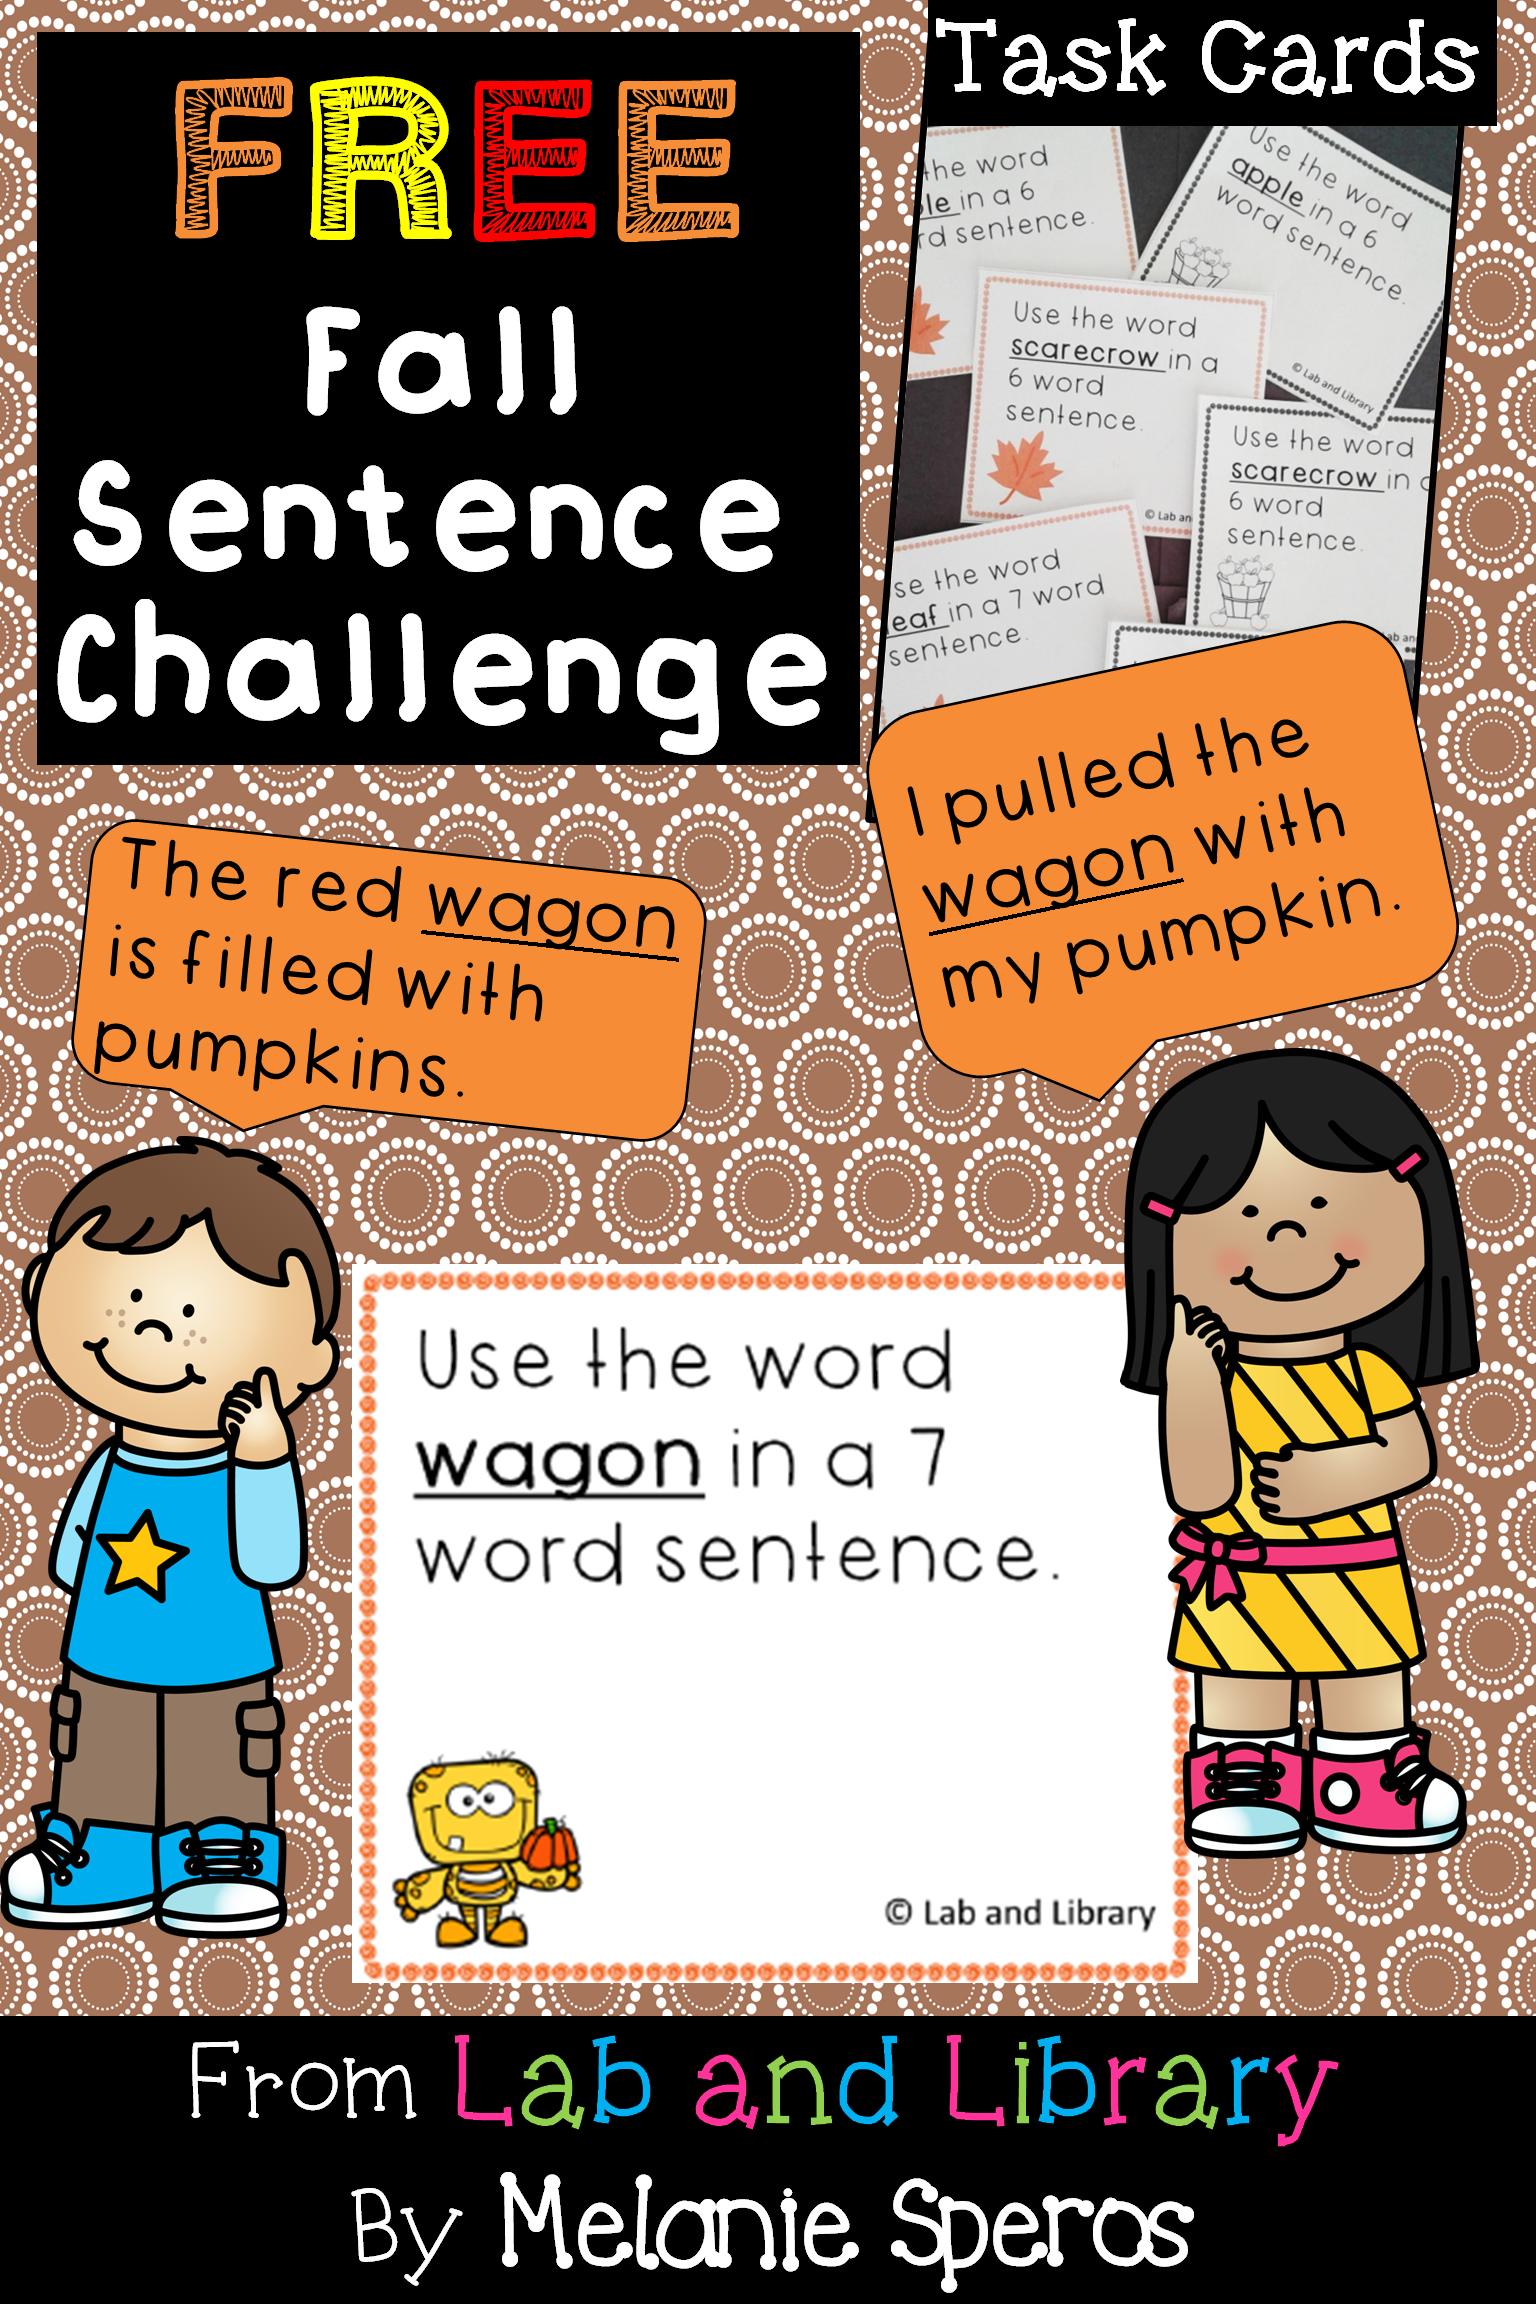 Free Oral Language And Writing Activity With A Halloween Fall Theme 12 Task Cards 1 Recording Sheet Halloween Sentences Writing Practice Writing Activities [ 2304 x 1536 Pixel ]